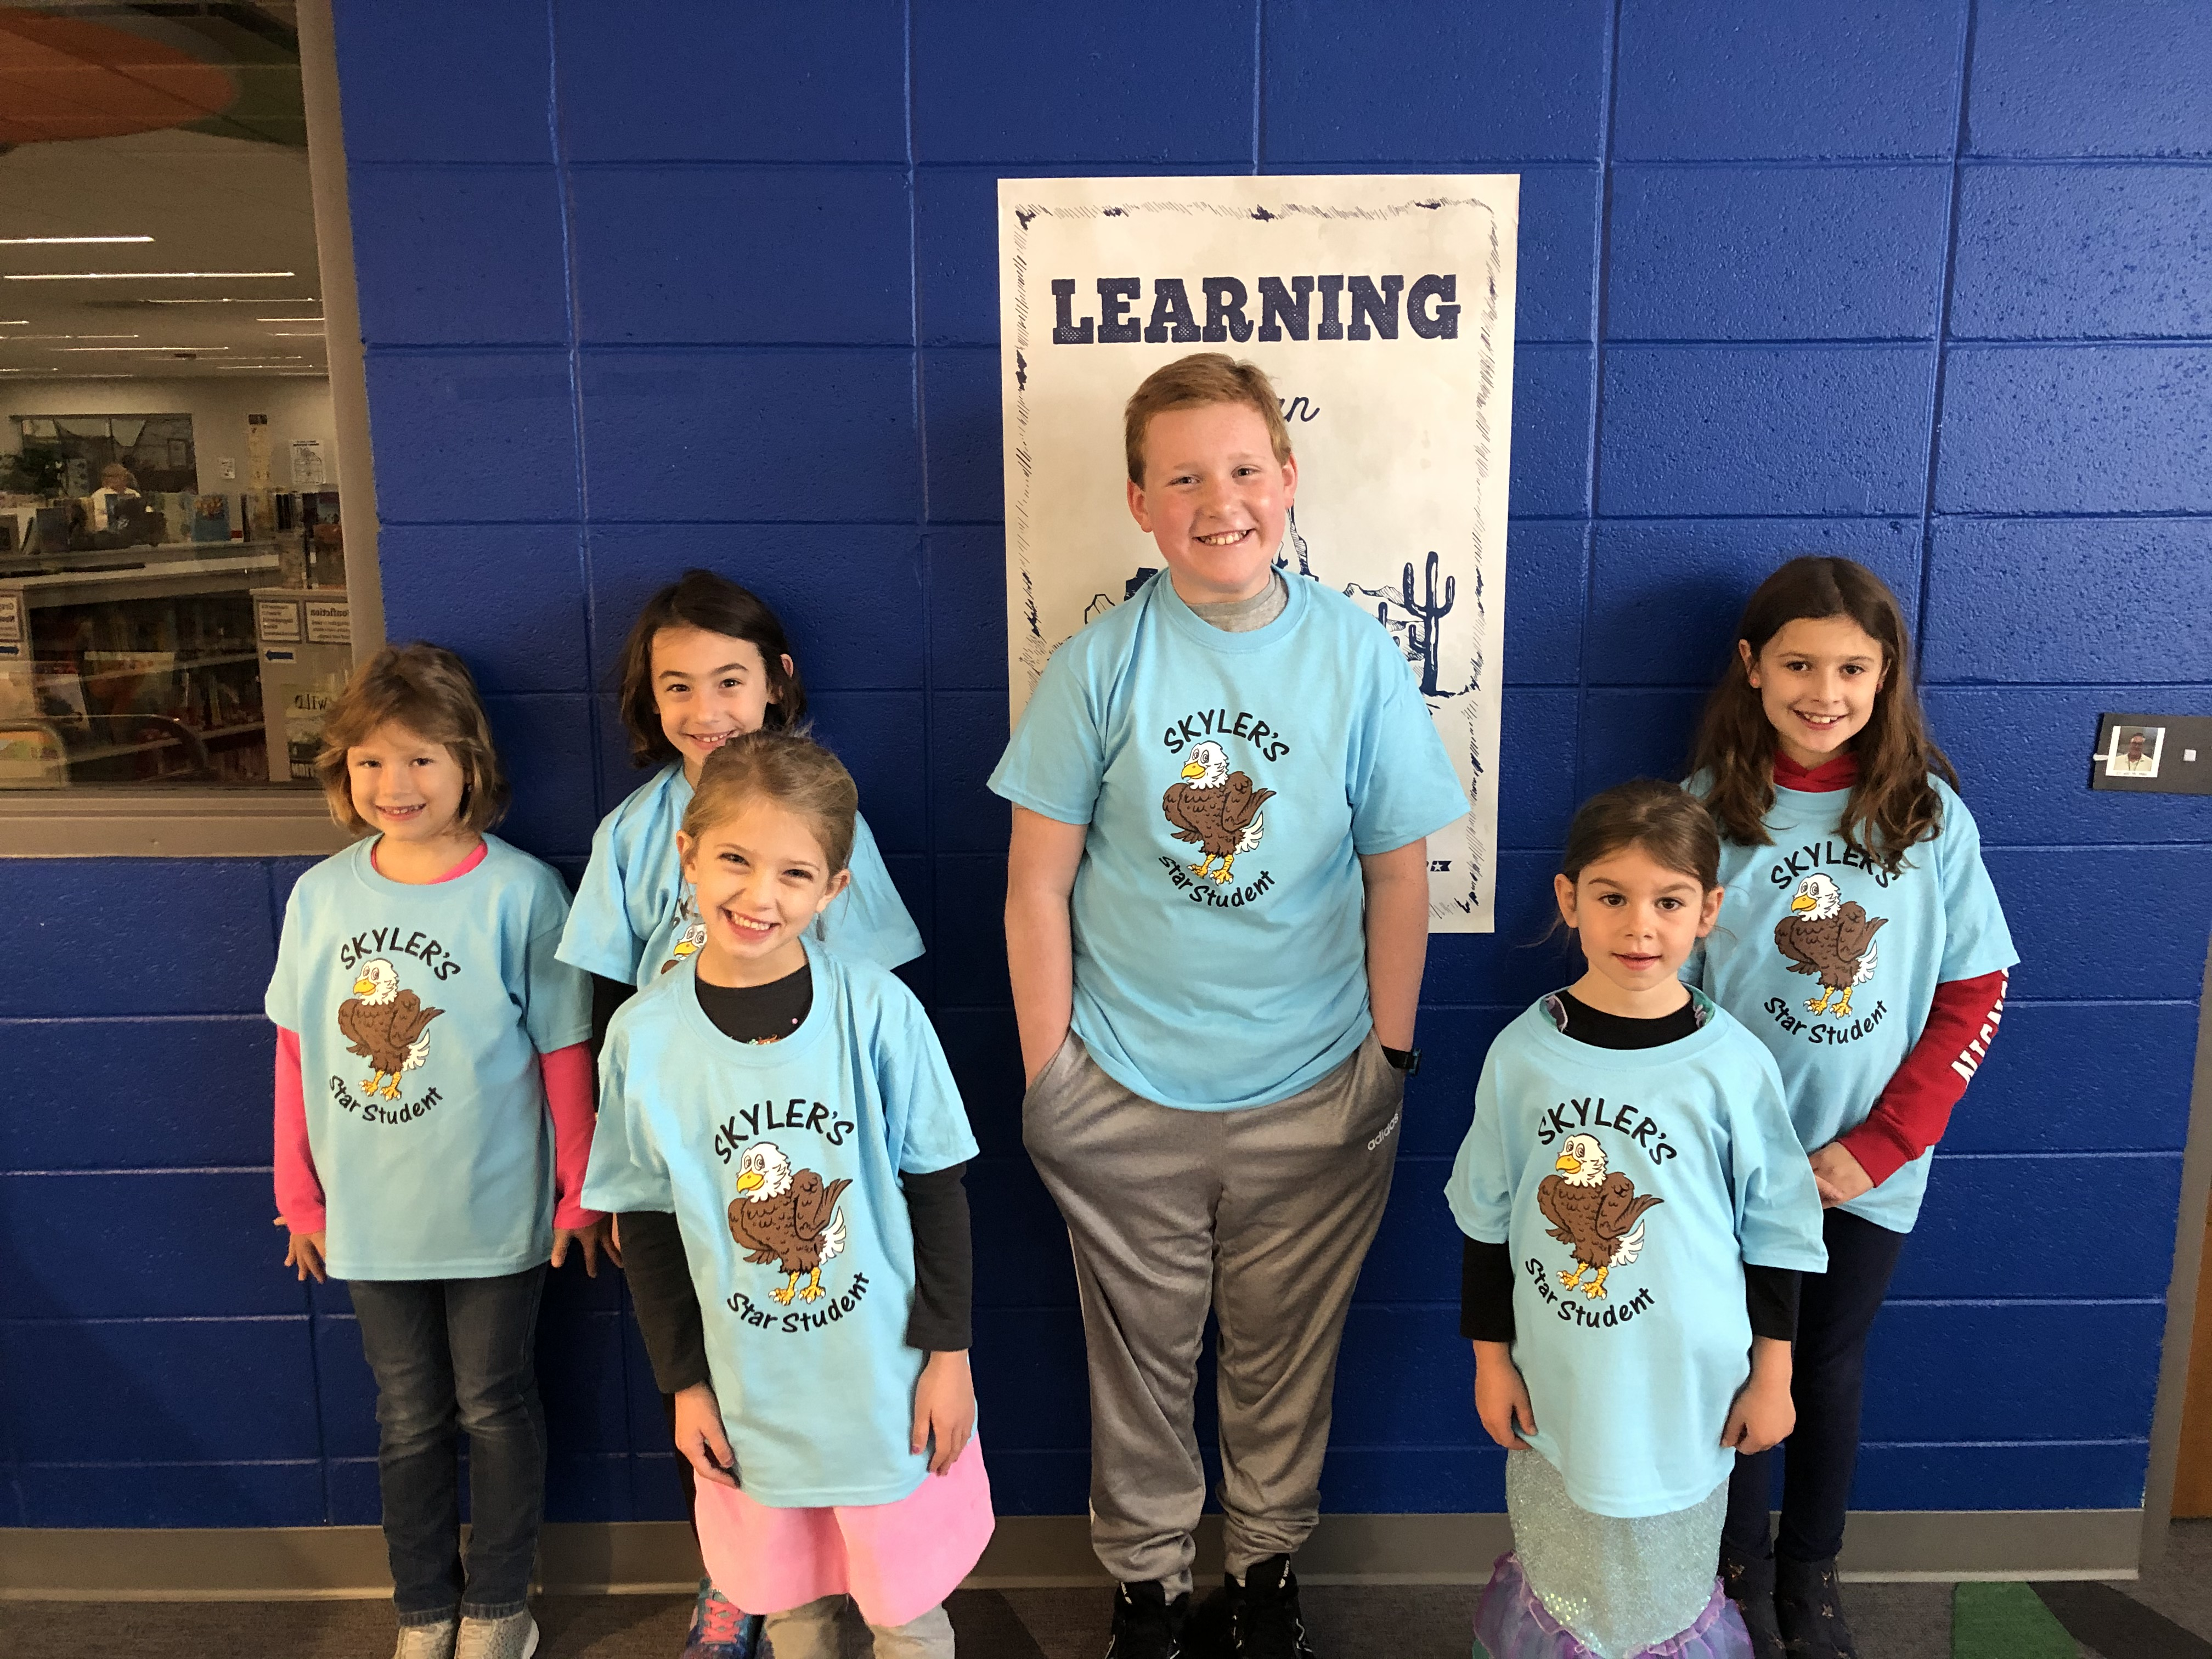 Skyler's October Star Students: Responsibility